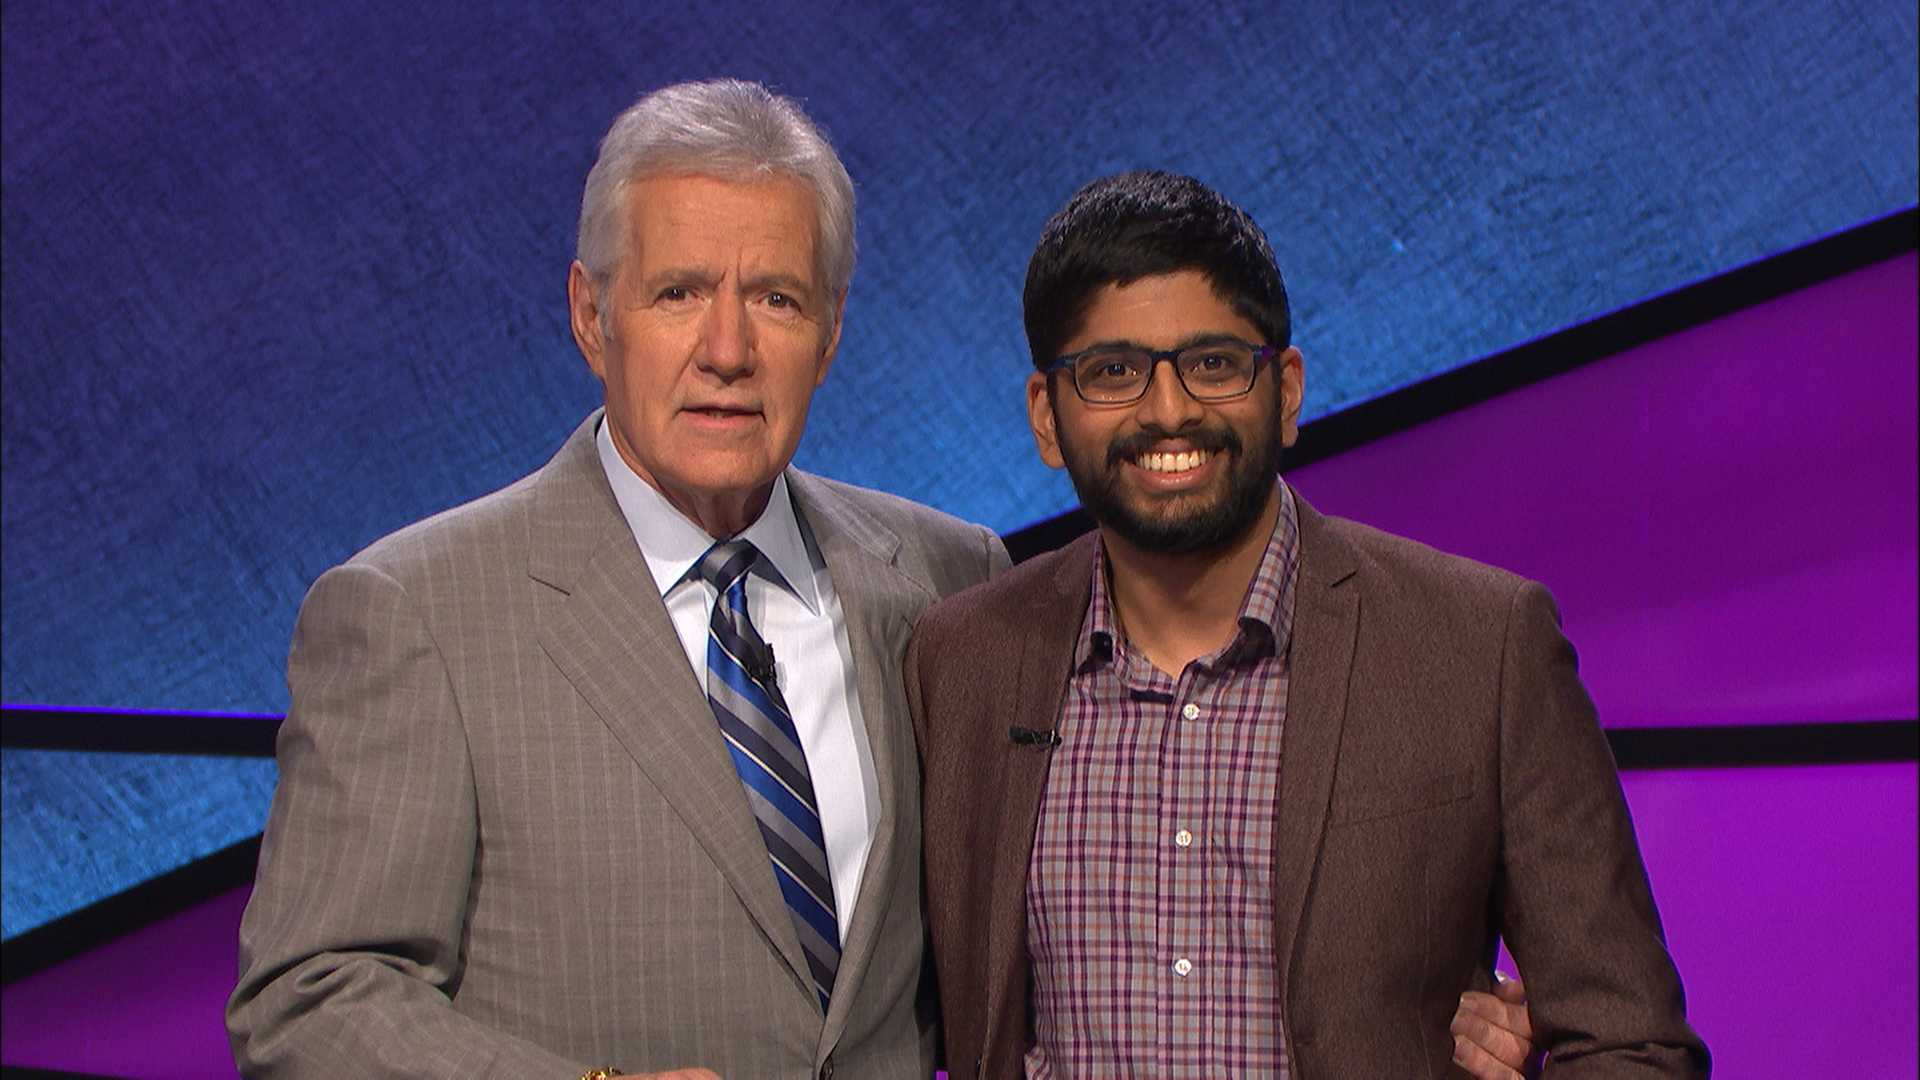 Pranjal Vachaspati appears with Alex Trebek in an episode that ran July 26, 2016.